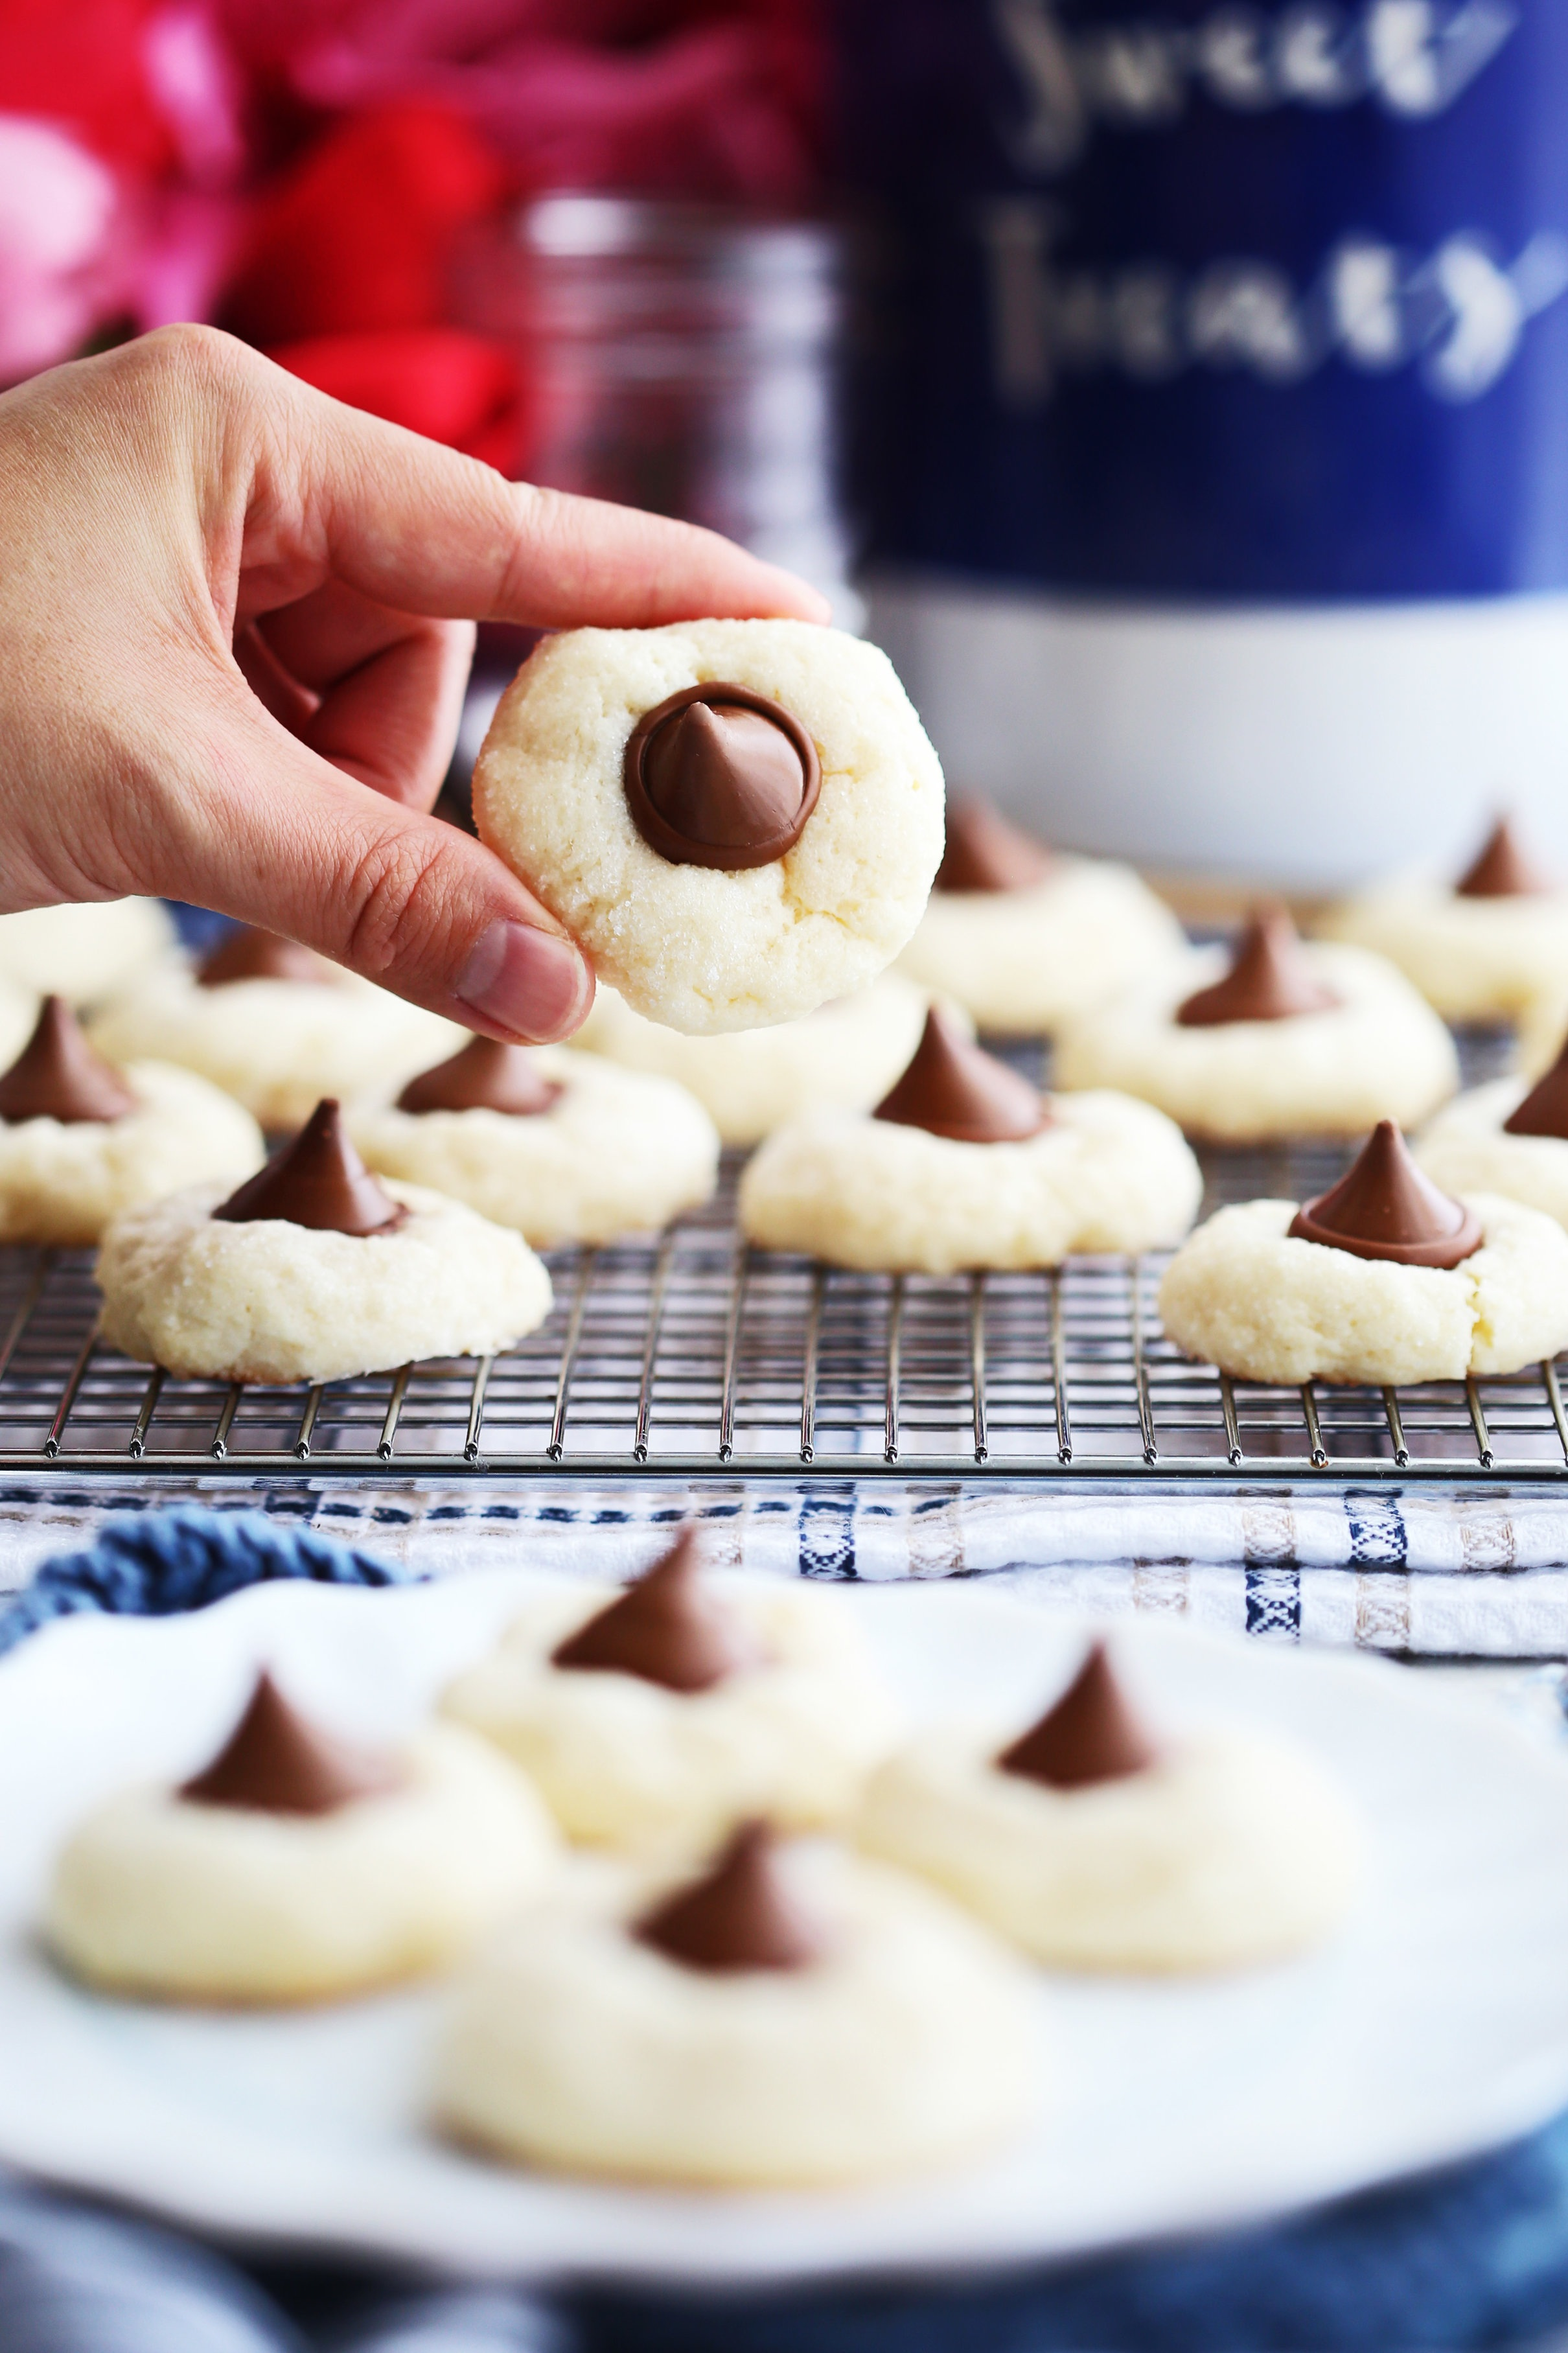 A hand holding up a single Cream Cheese Kiss Cookie over a white plate and cooling rack filled with more Cream Cheese Kiss Cookies.